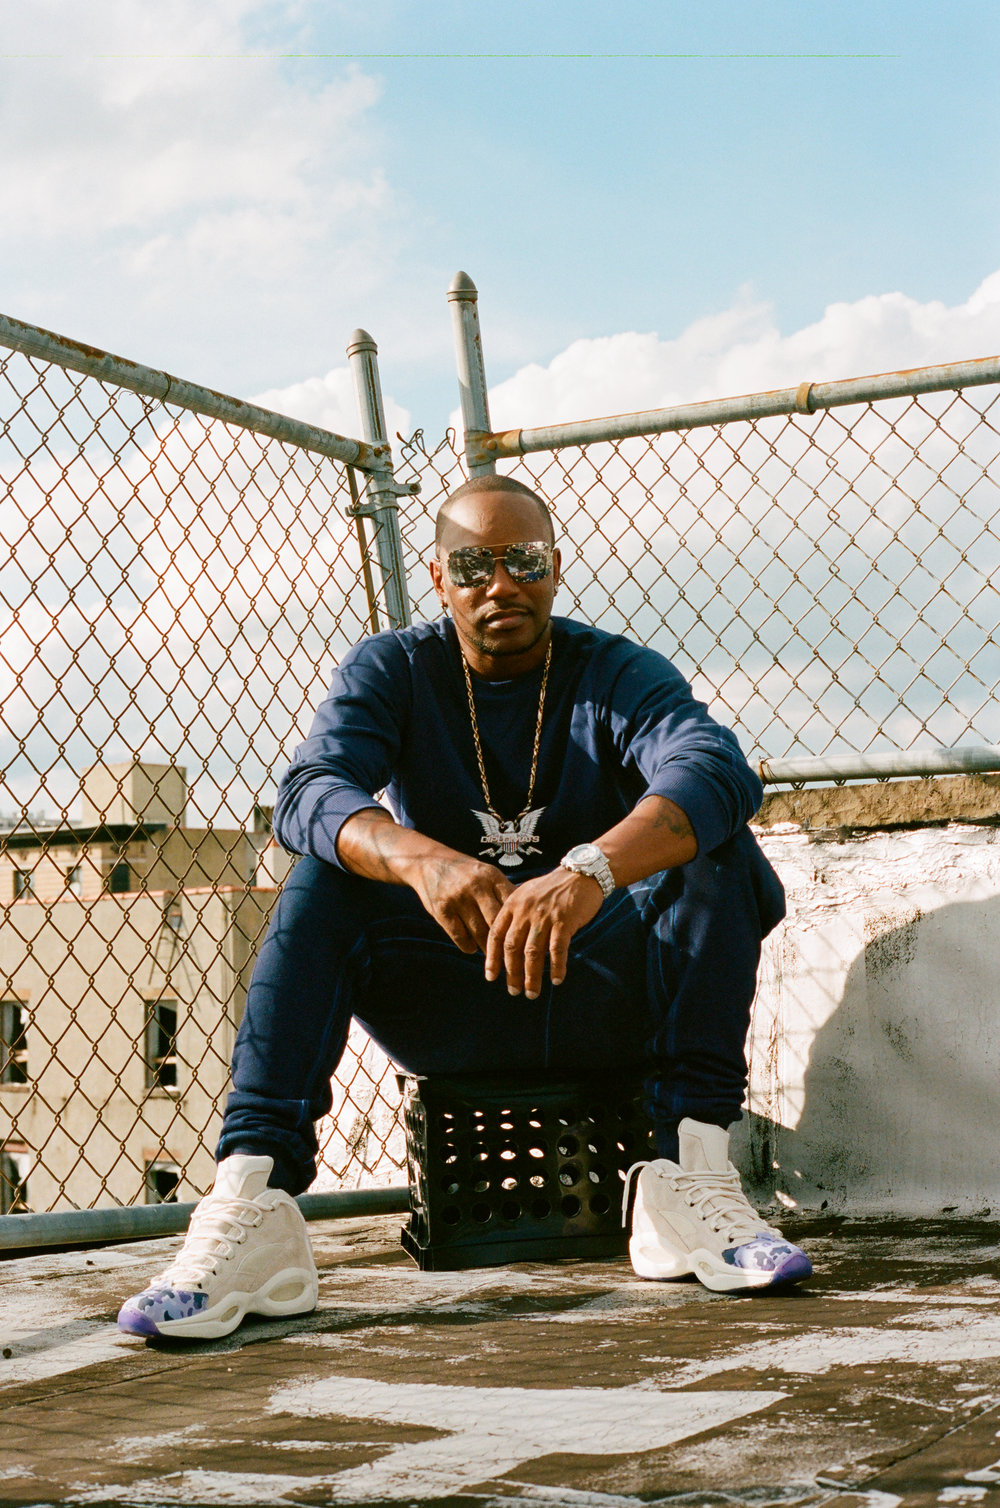 Cam'ron for Reebok Classics.   Producer: ONLUNCHBREAK  Videographer: Sammy Suh